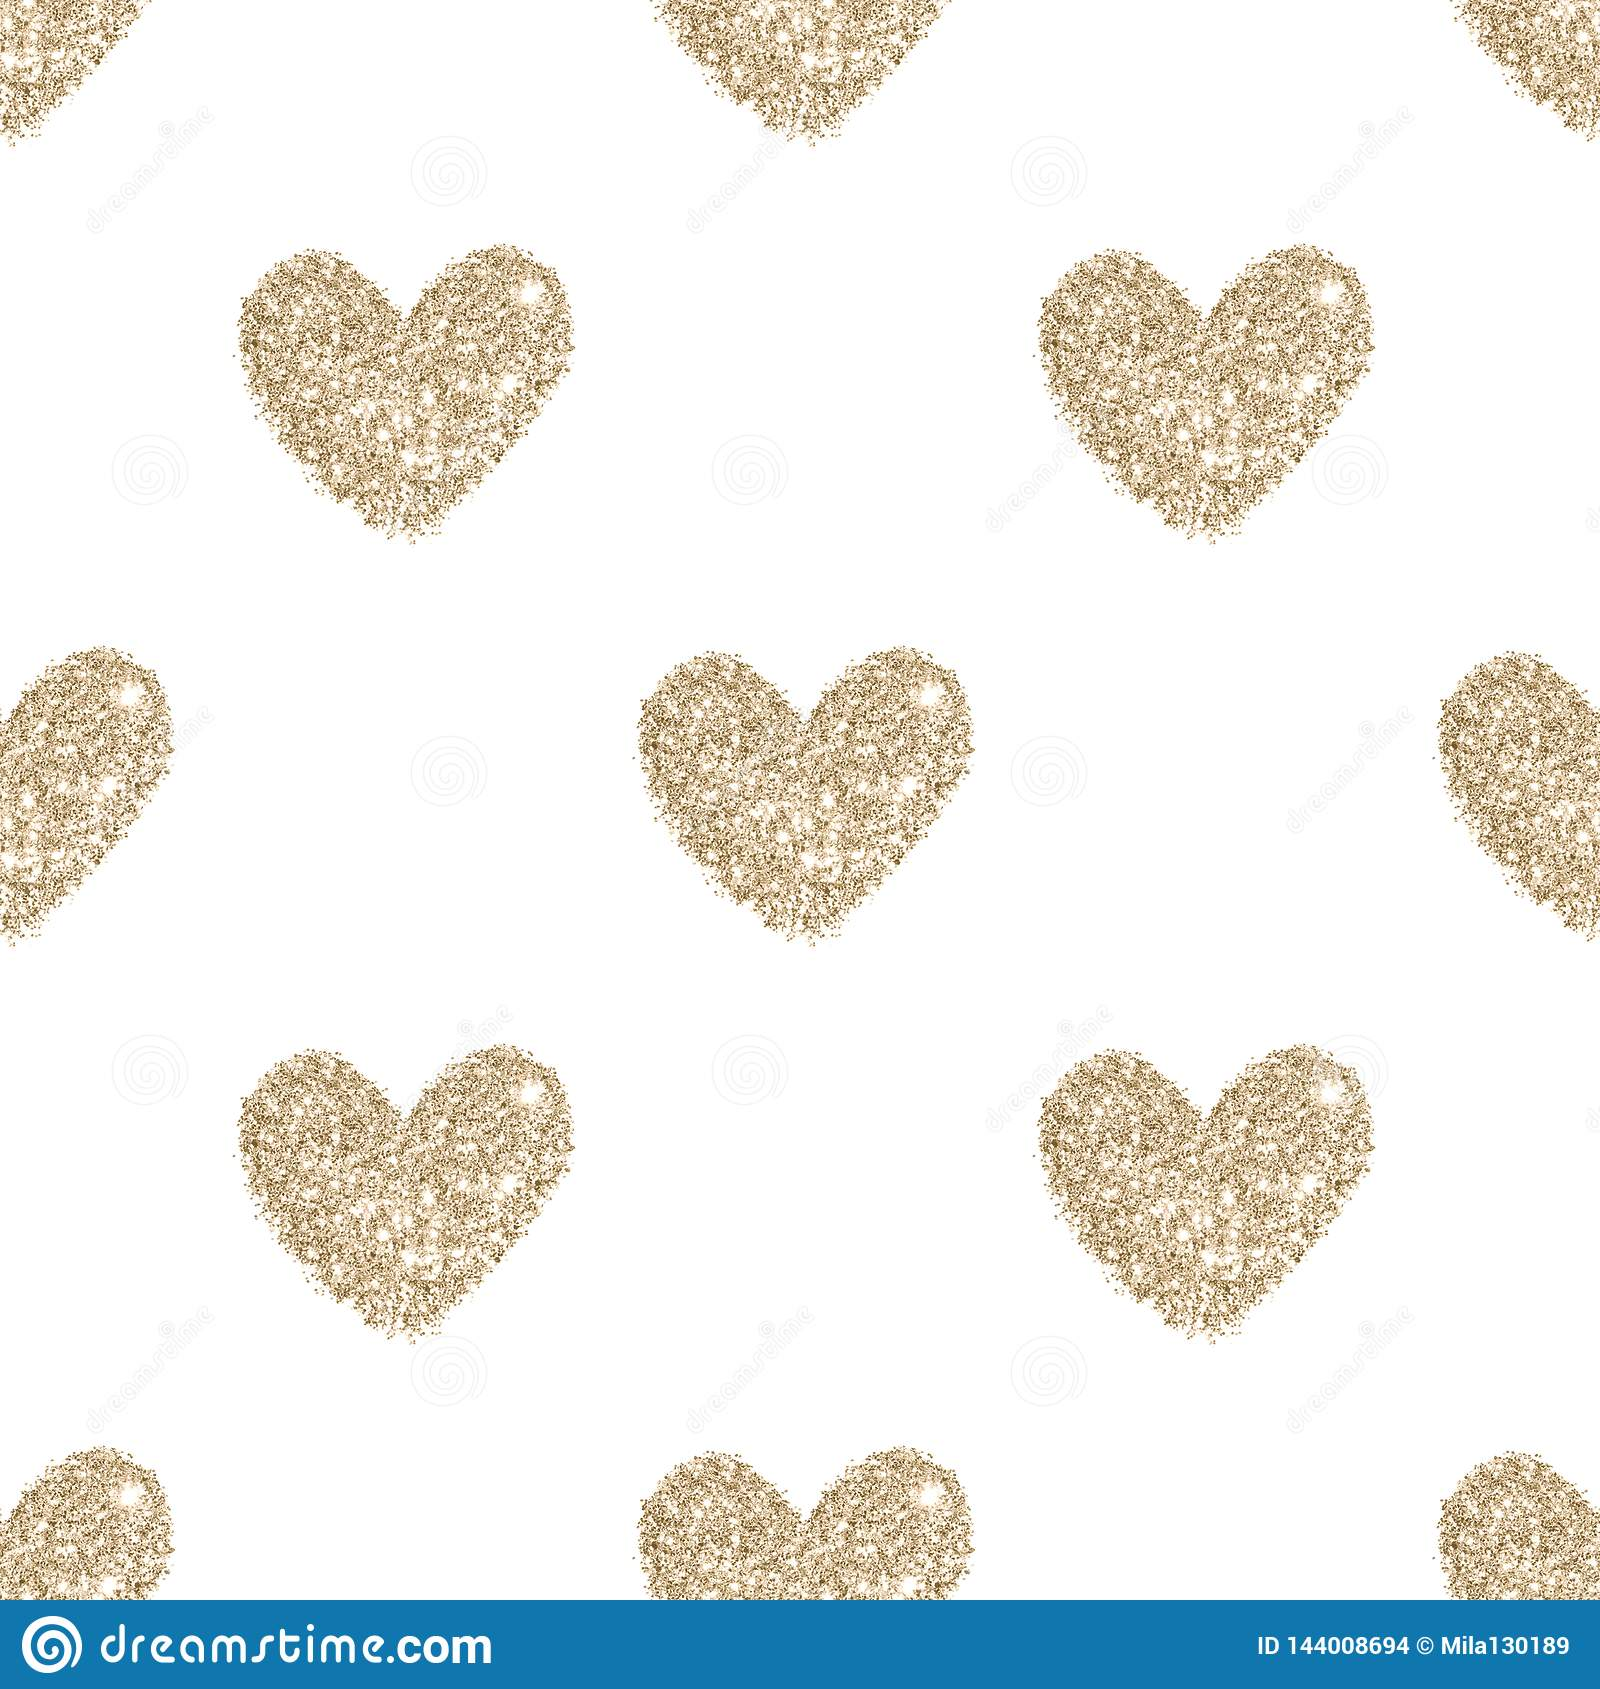 Background with hearts of golden glitter, seamless pattern in vintage colors